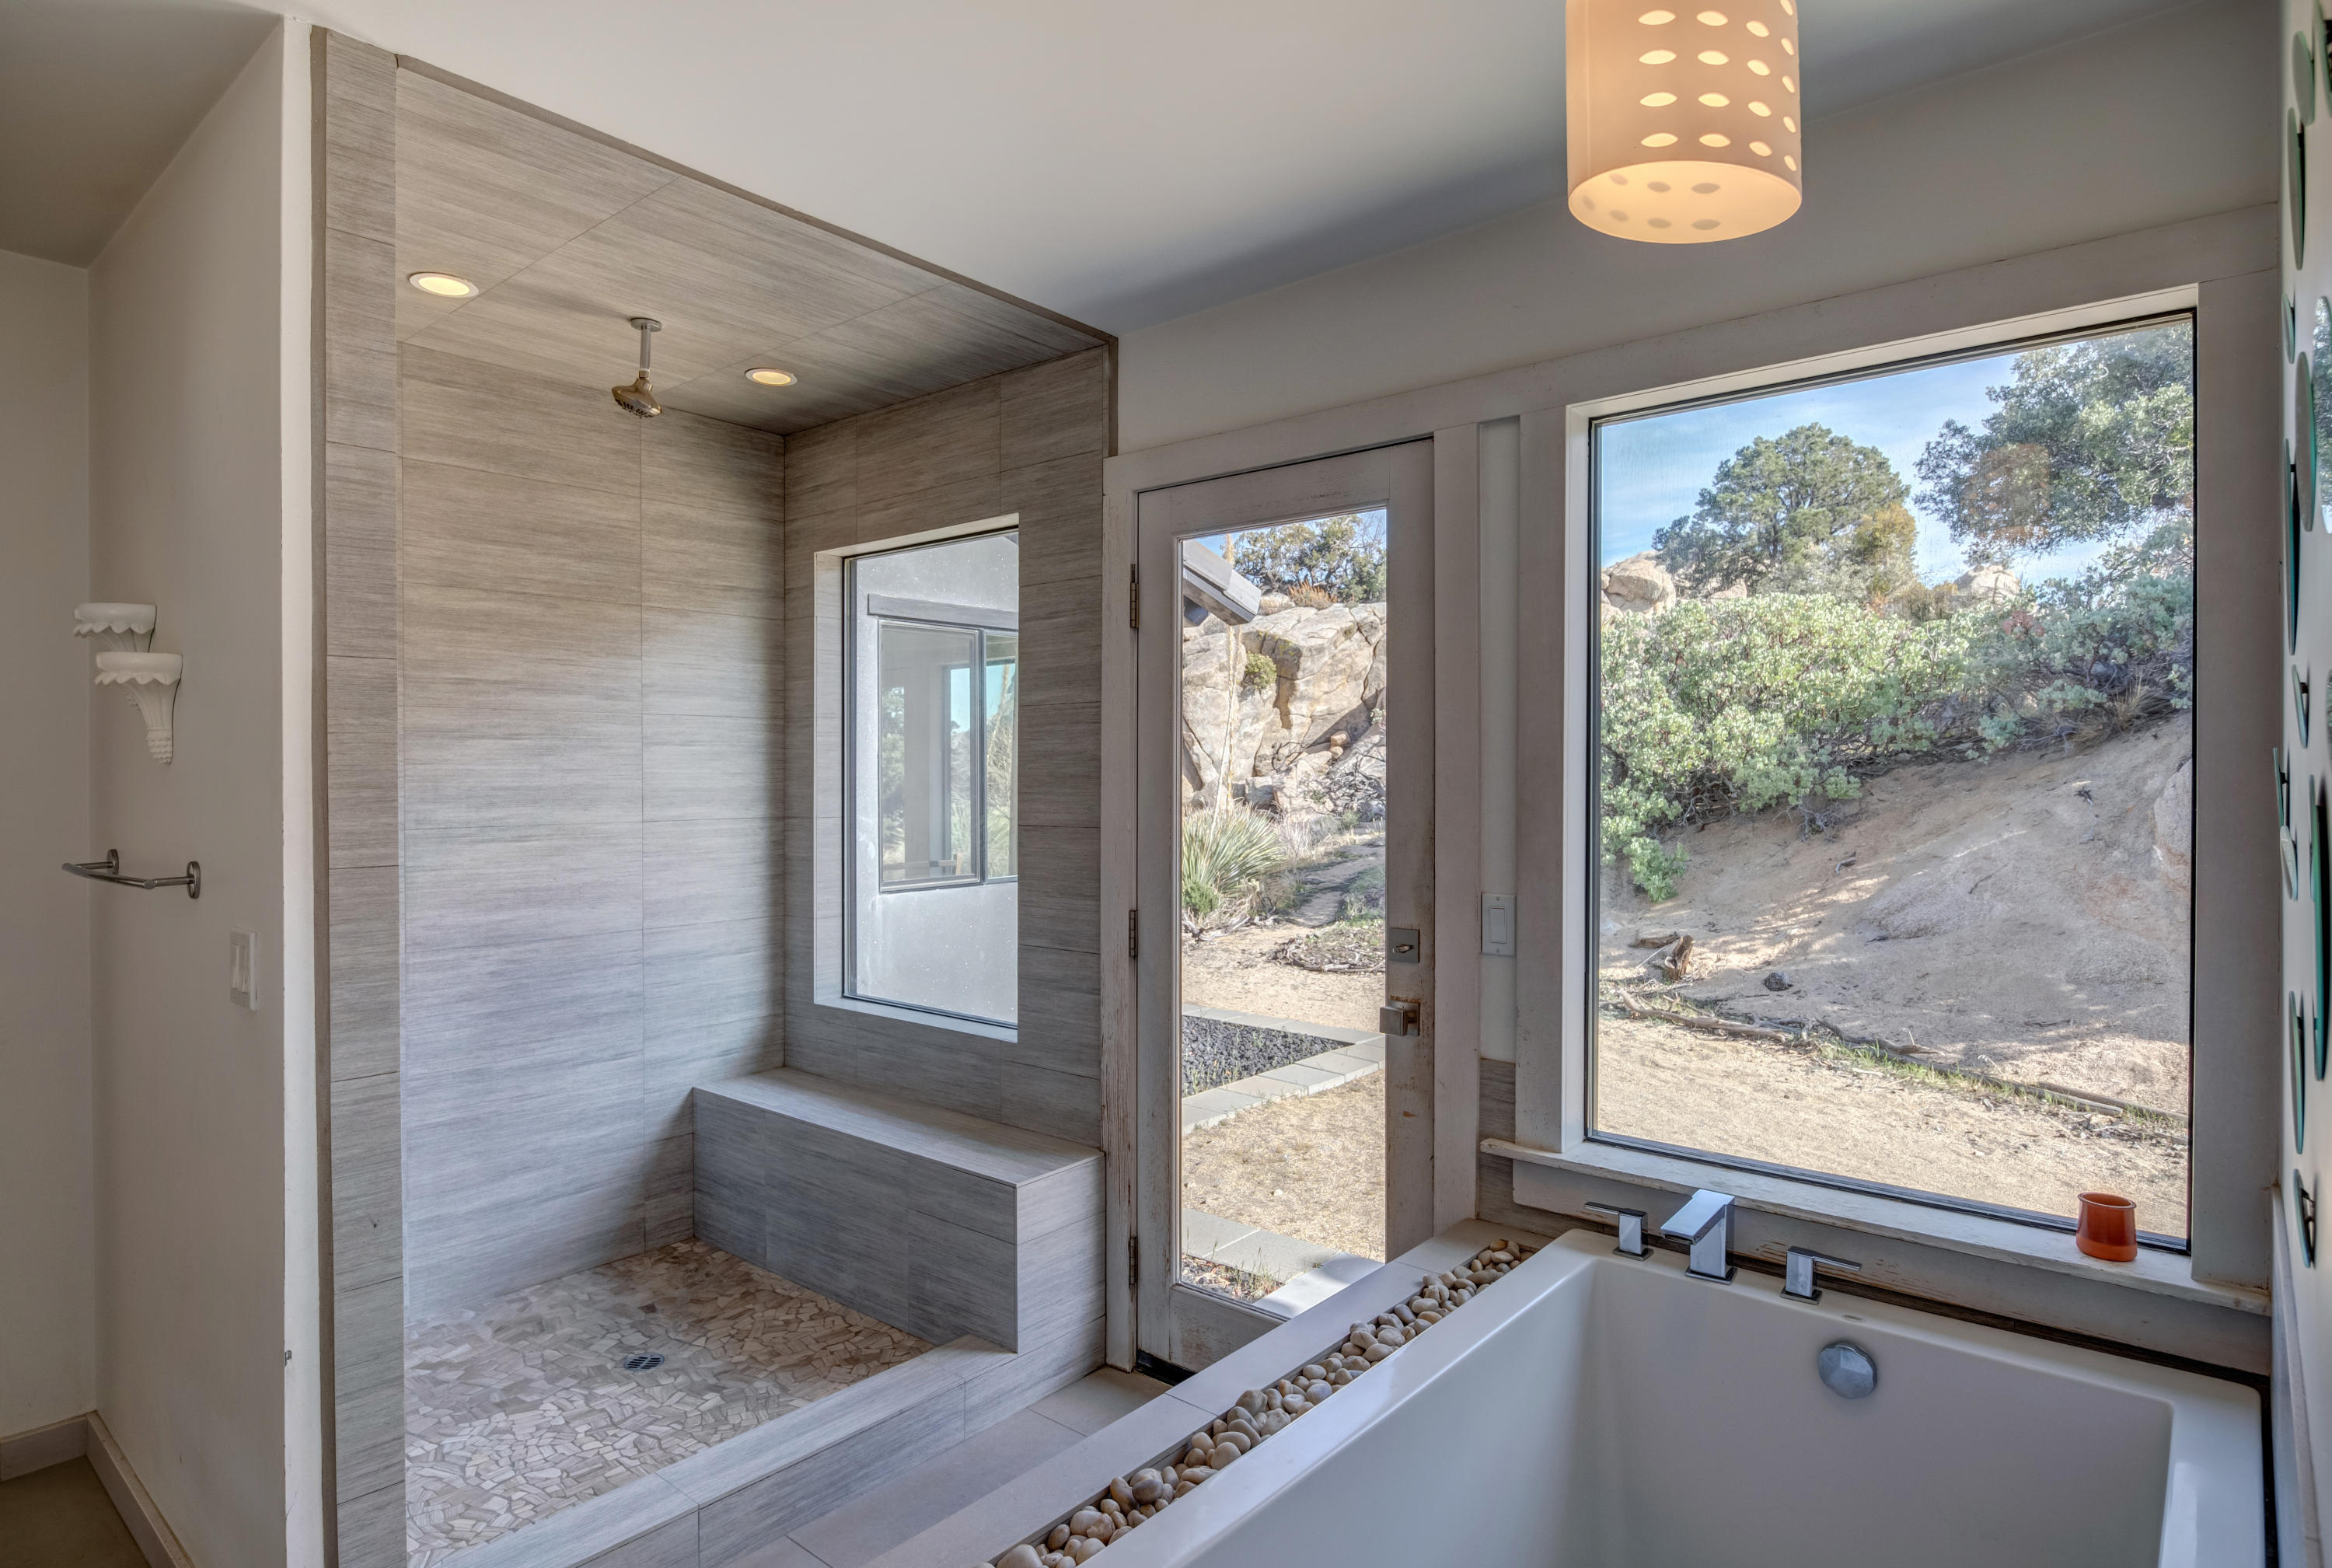 70441 Hanging Rock Lane, Mountain Center, California 92561, 3 Bedrooms Bedrooms, ,4 BathroomsBathrooms,Residential,For Sale,70441 Hanging Rock Lane,219035948